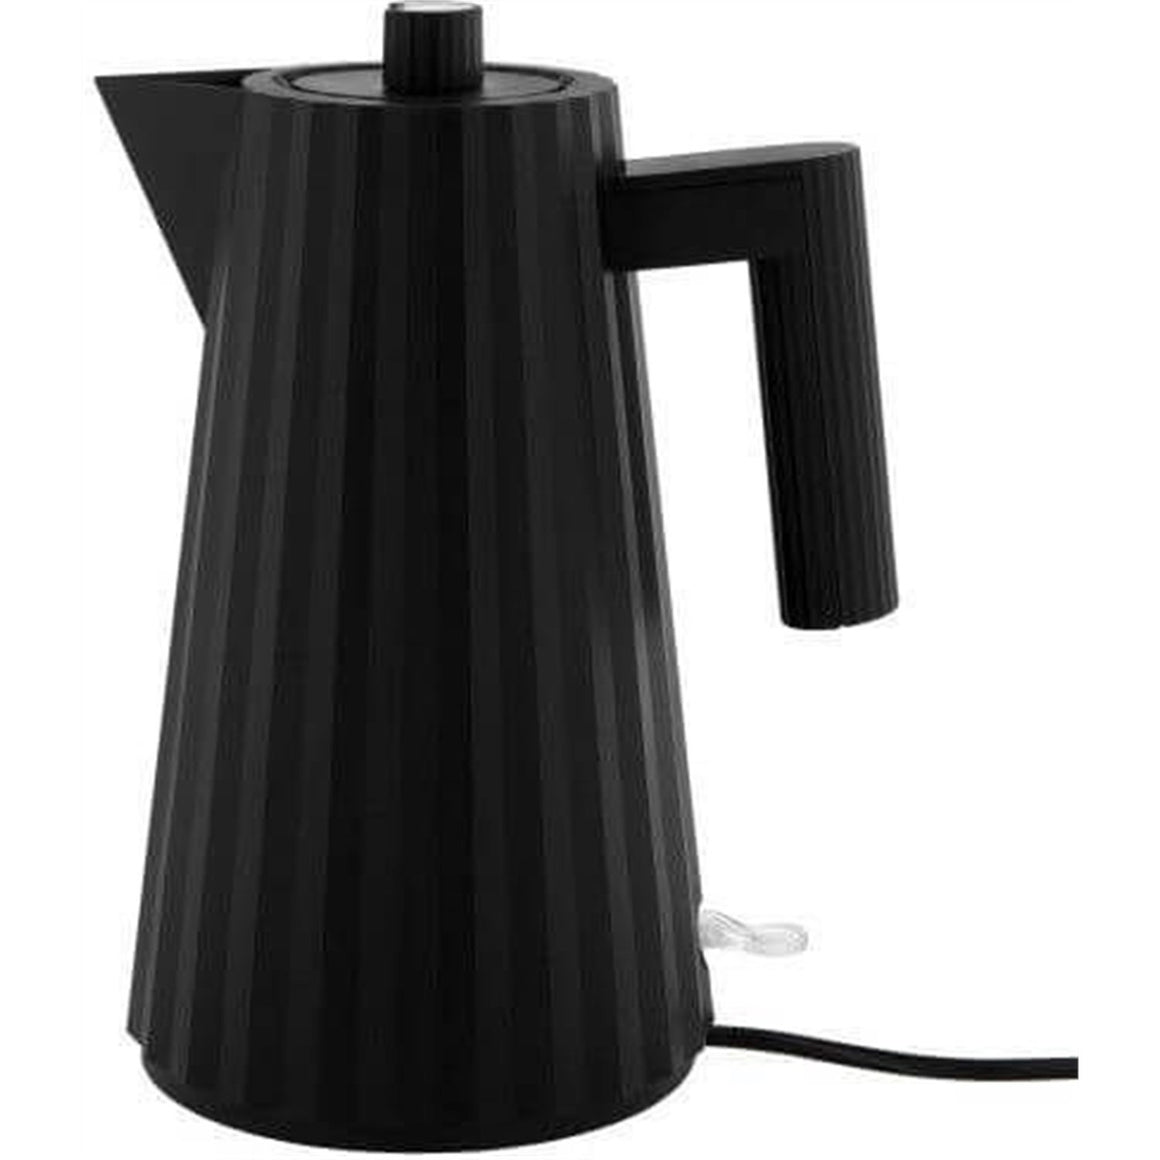 ALESSI ELECTRIC KETTLE PLISSE' - Black Kitchen Alessi